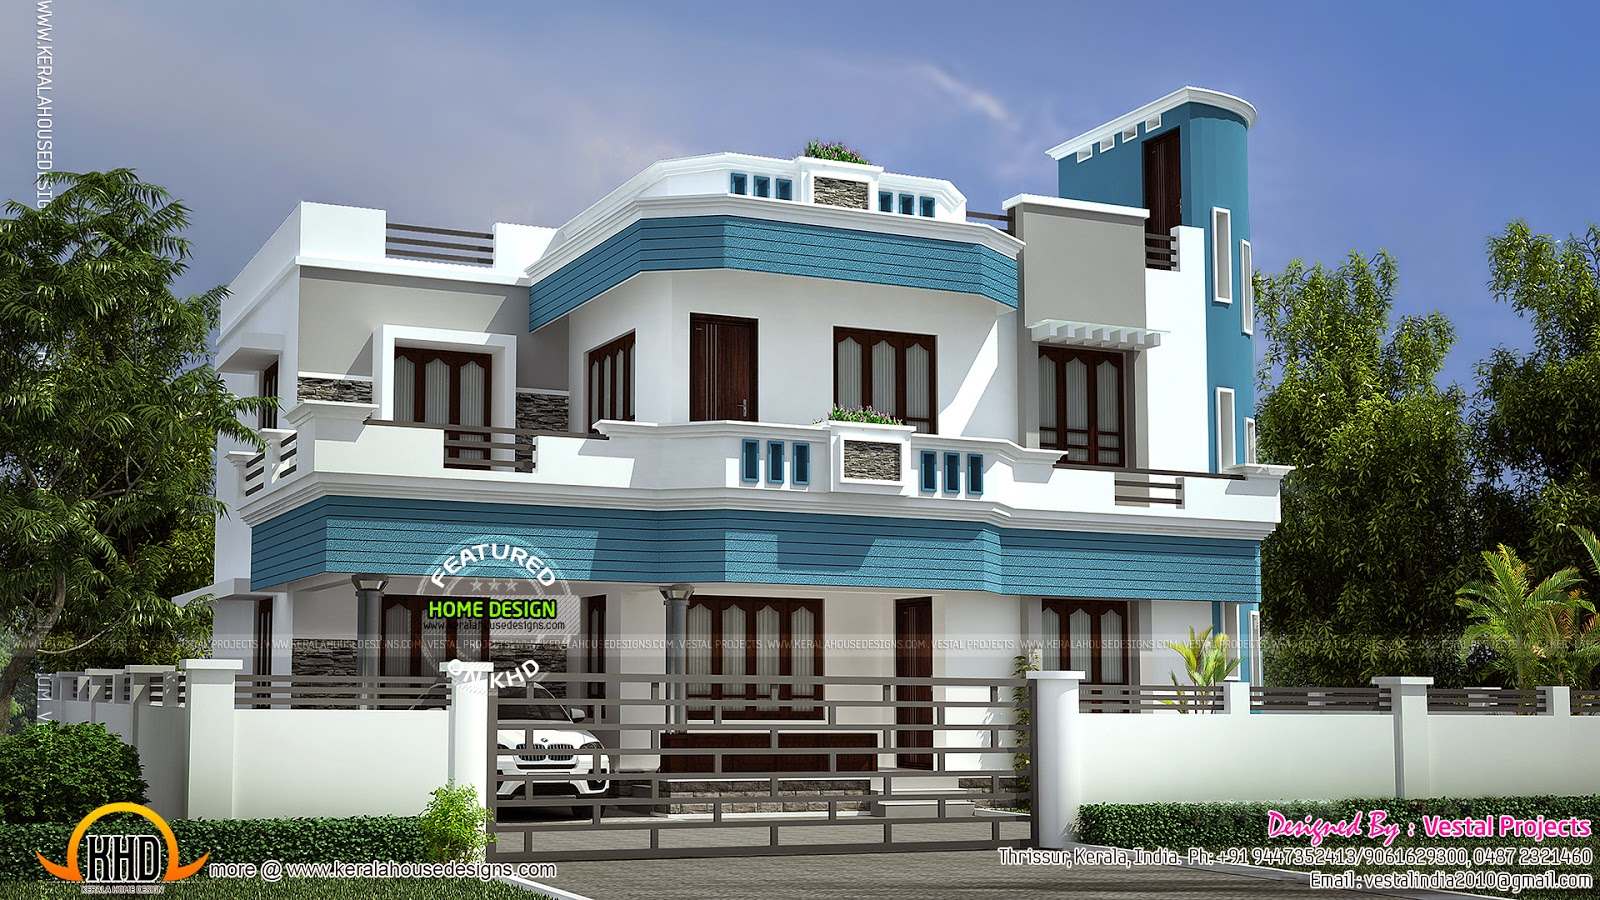 Awesome house by Vestal Projects  Kerala home design and floor plans